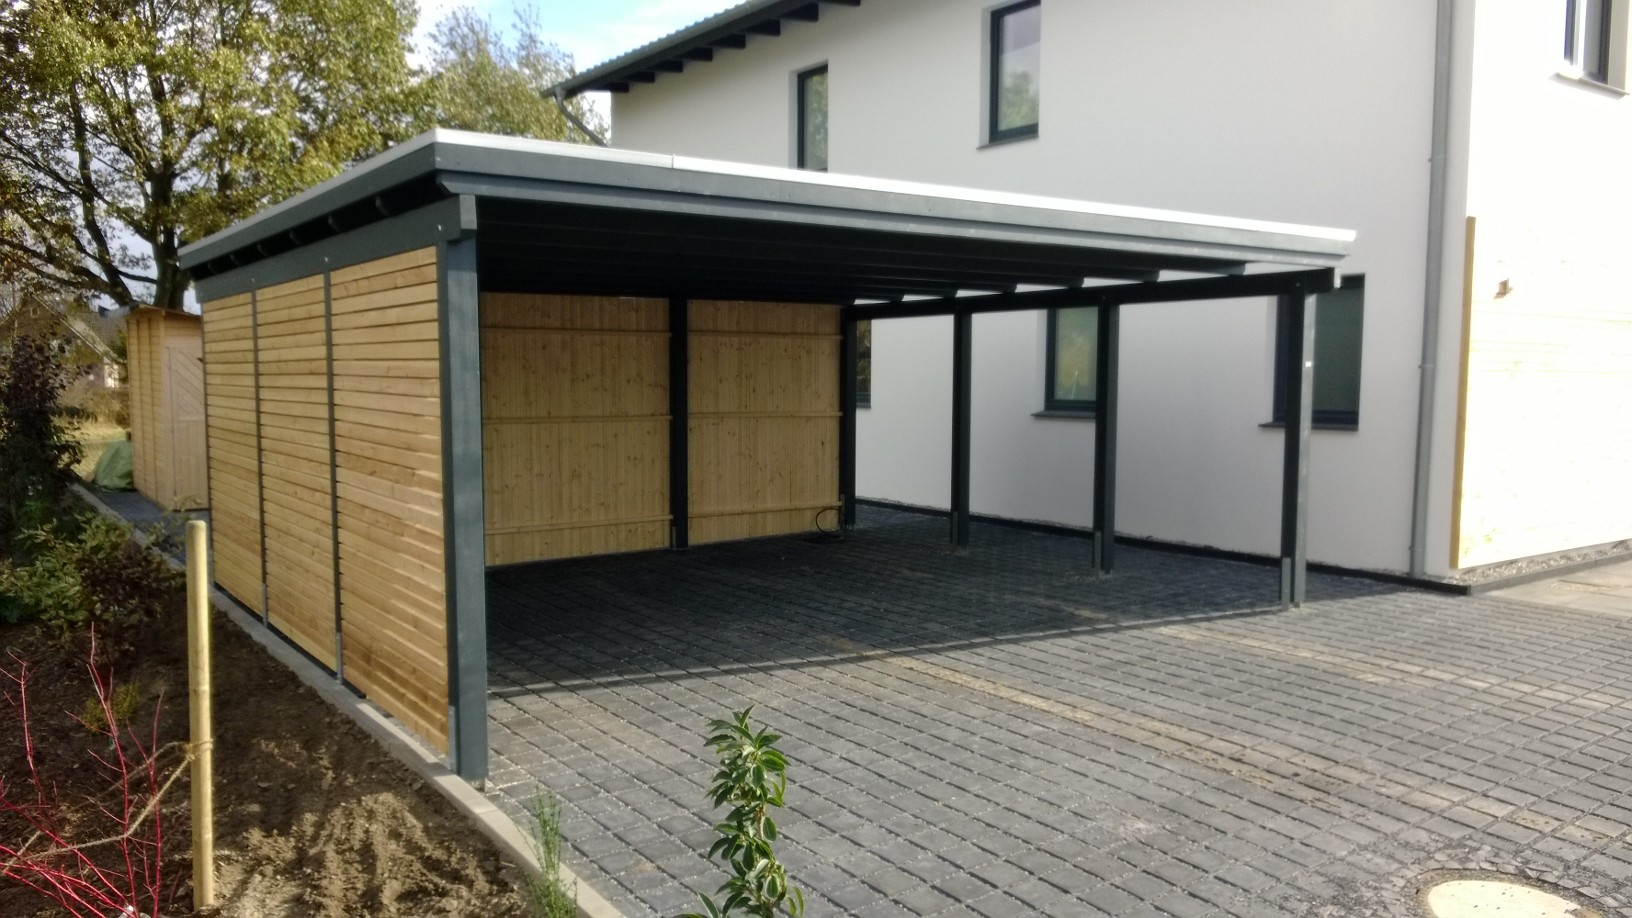 fundament f r carport wie tief design carport aus stahl in ral farben robustes walmdach. Black Bedroom Furniture Sets. Home Design Ideas